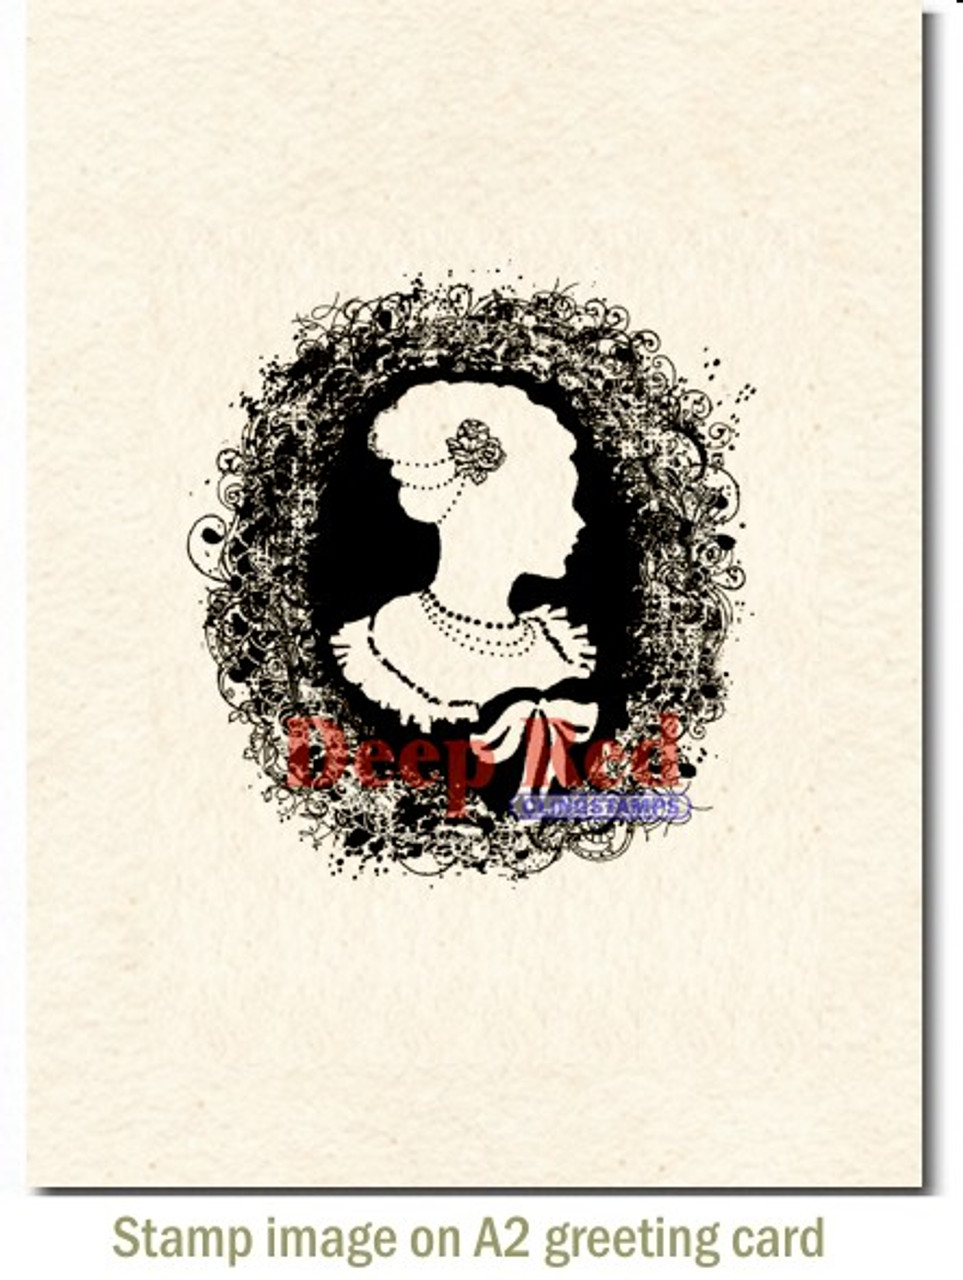 Deep Red Stamps Turkey Rubber Cling Stamp